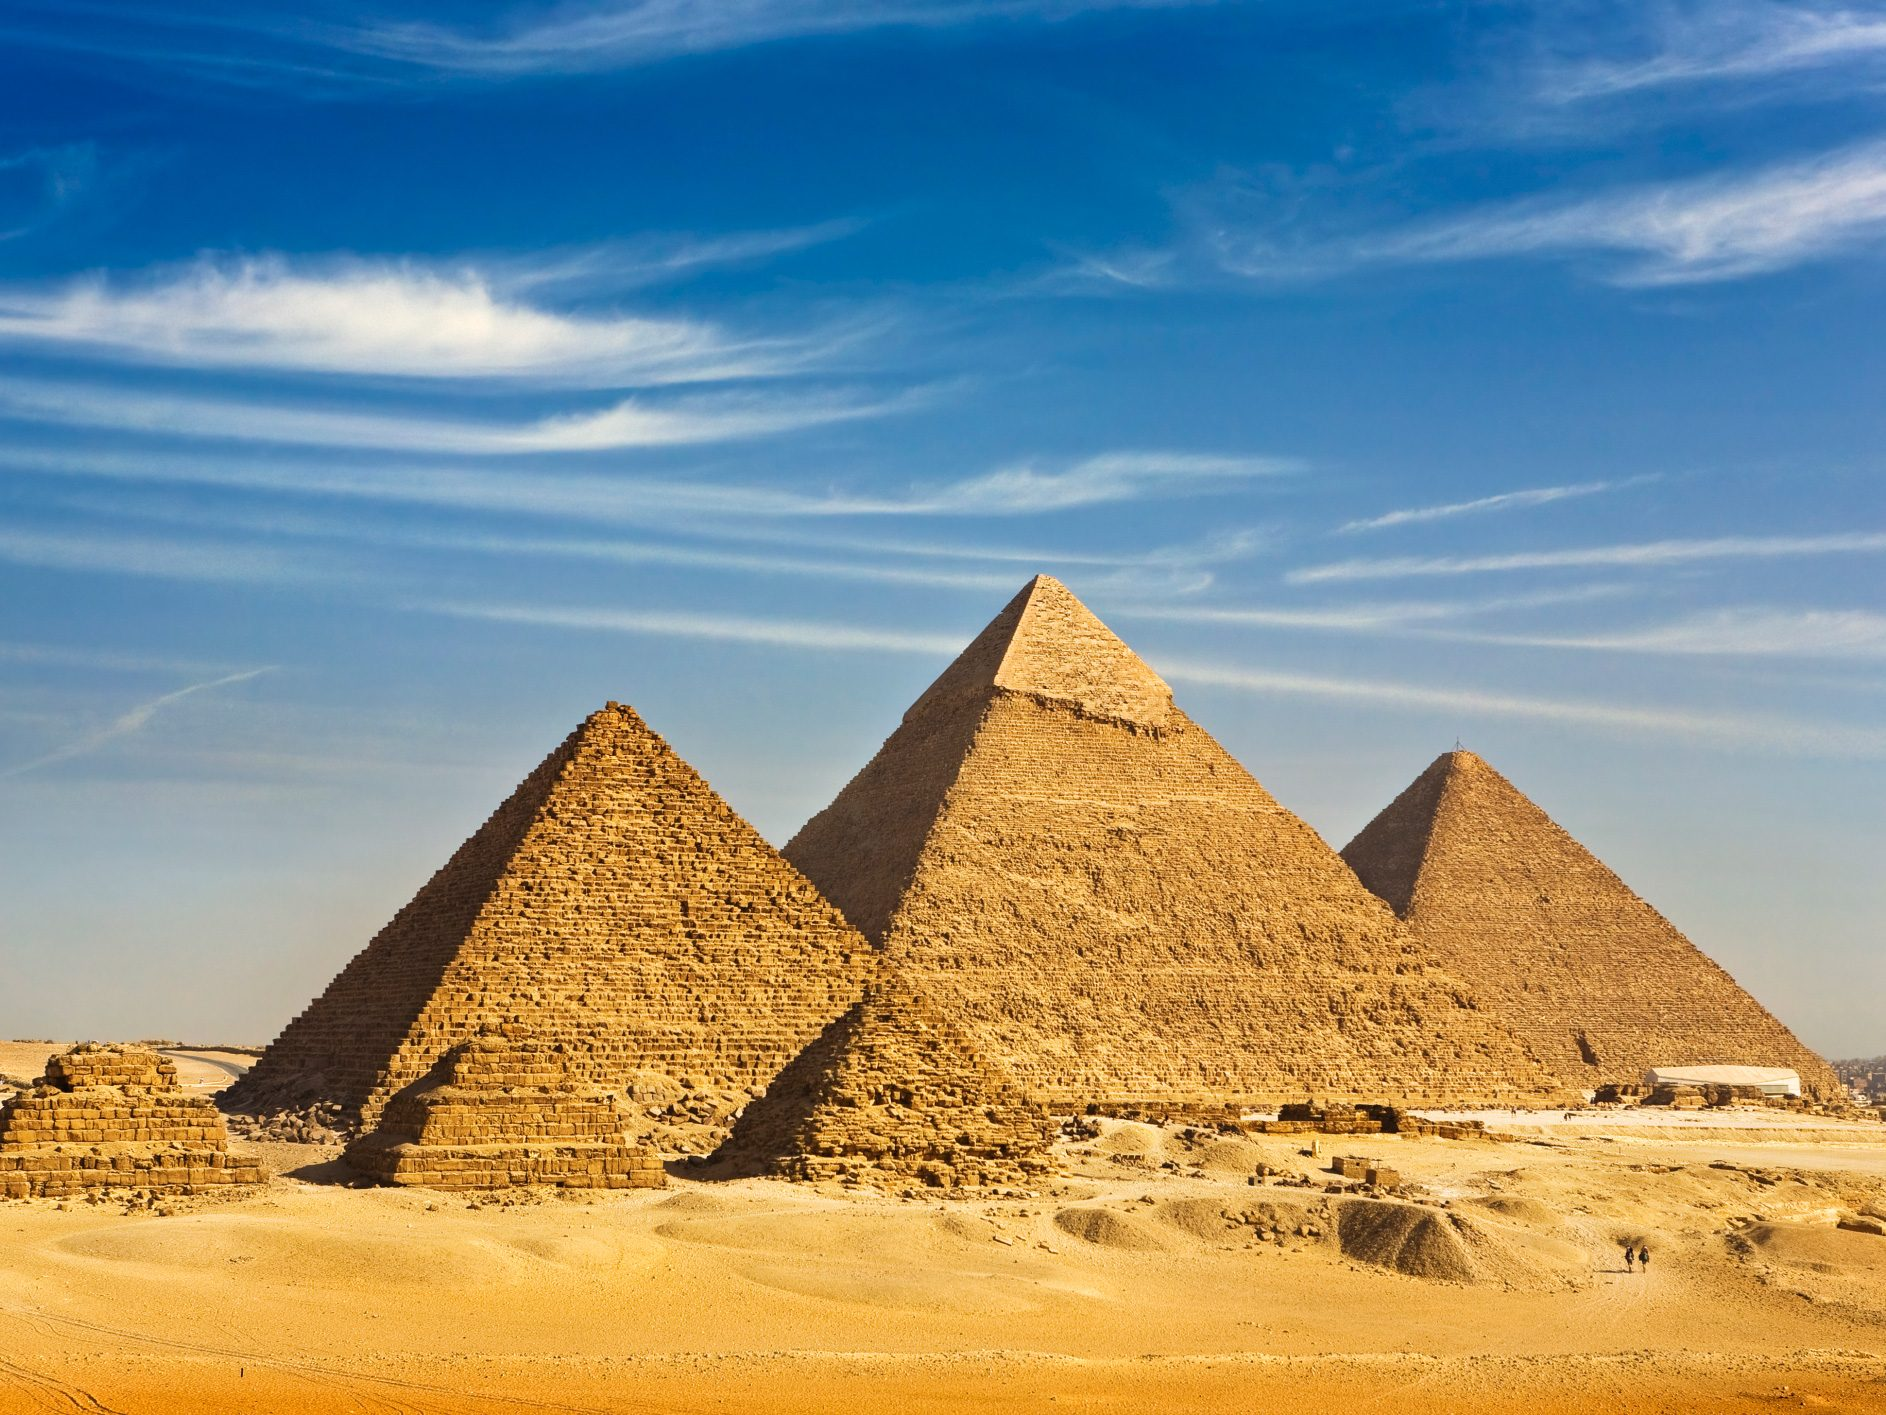 Architectural Wonders Of The Ancient World: The Pyramids - Egypt